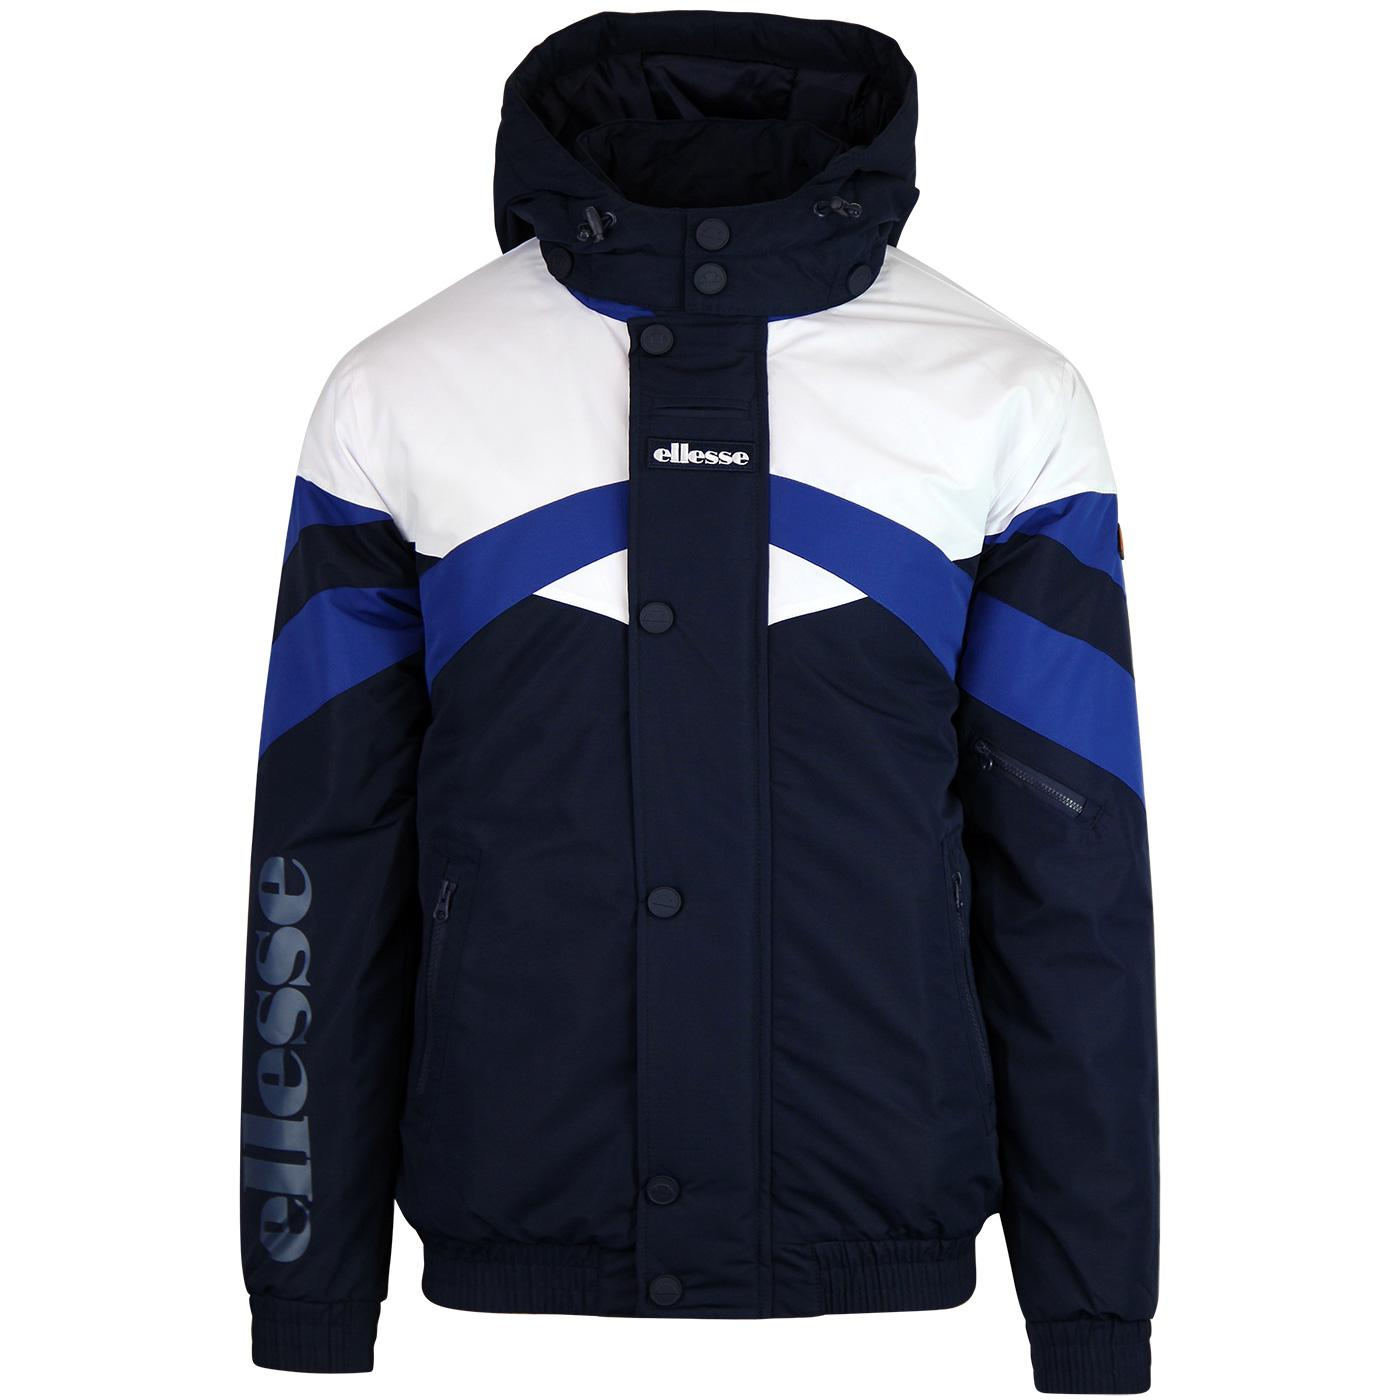 Meo ELLESSE Men's Retro 80's Panel Padded Jacket